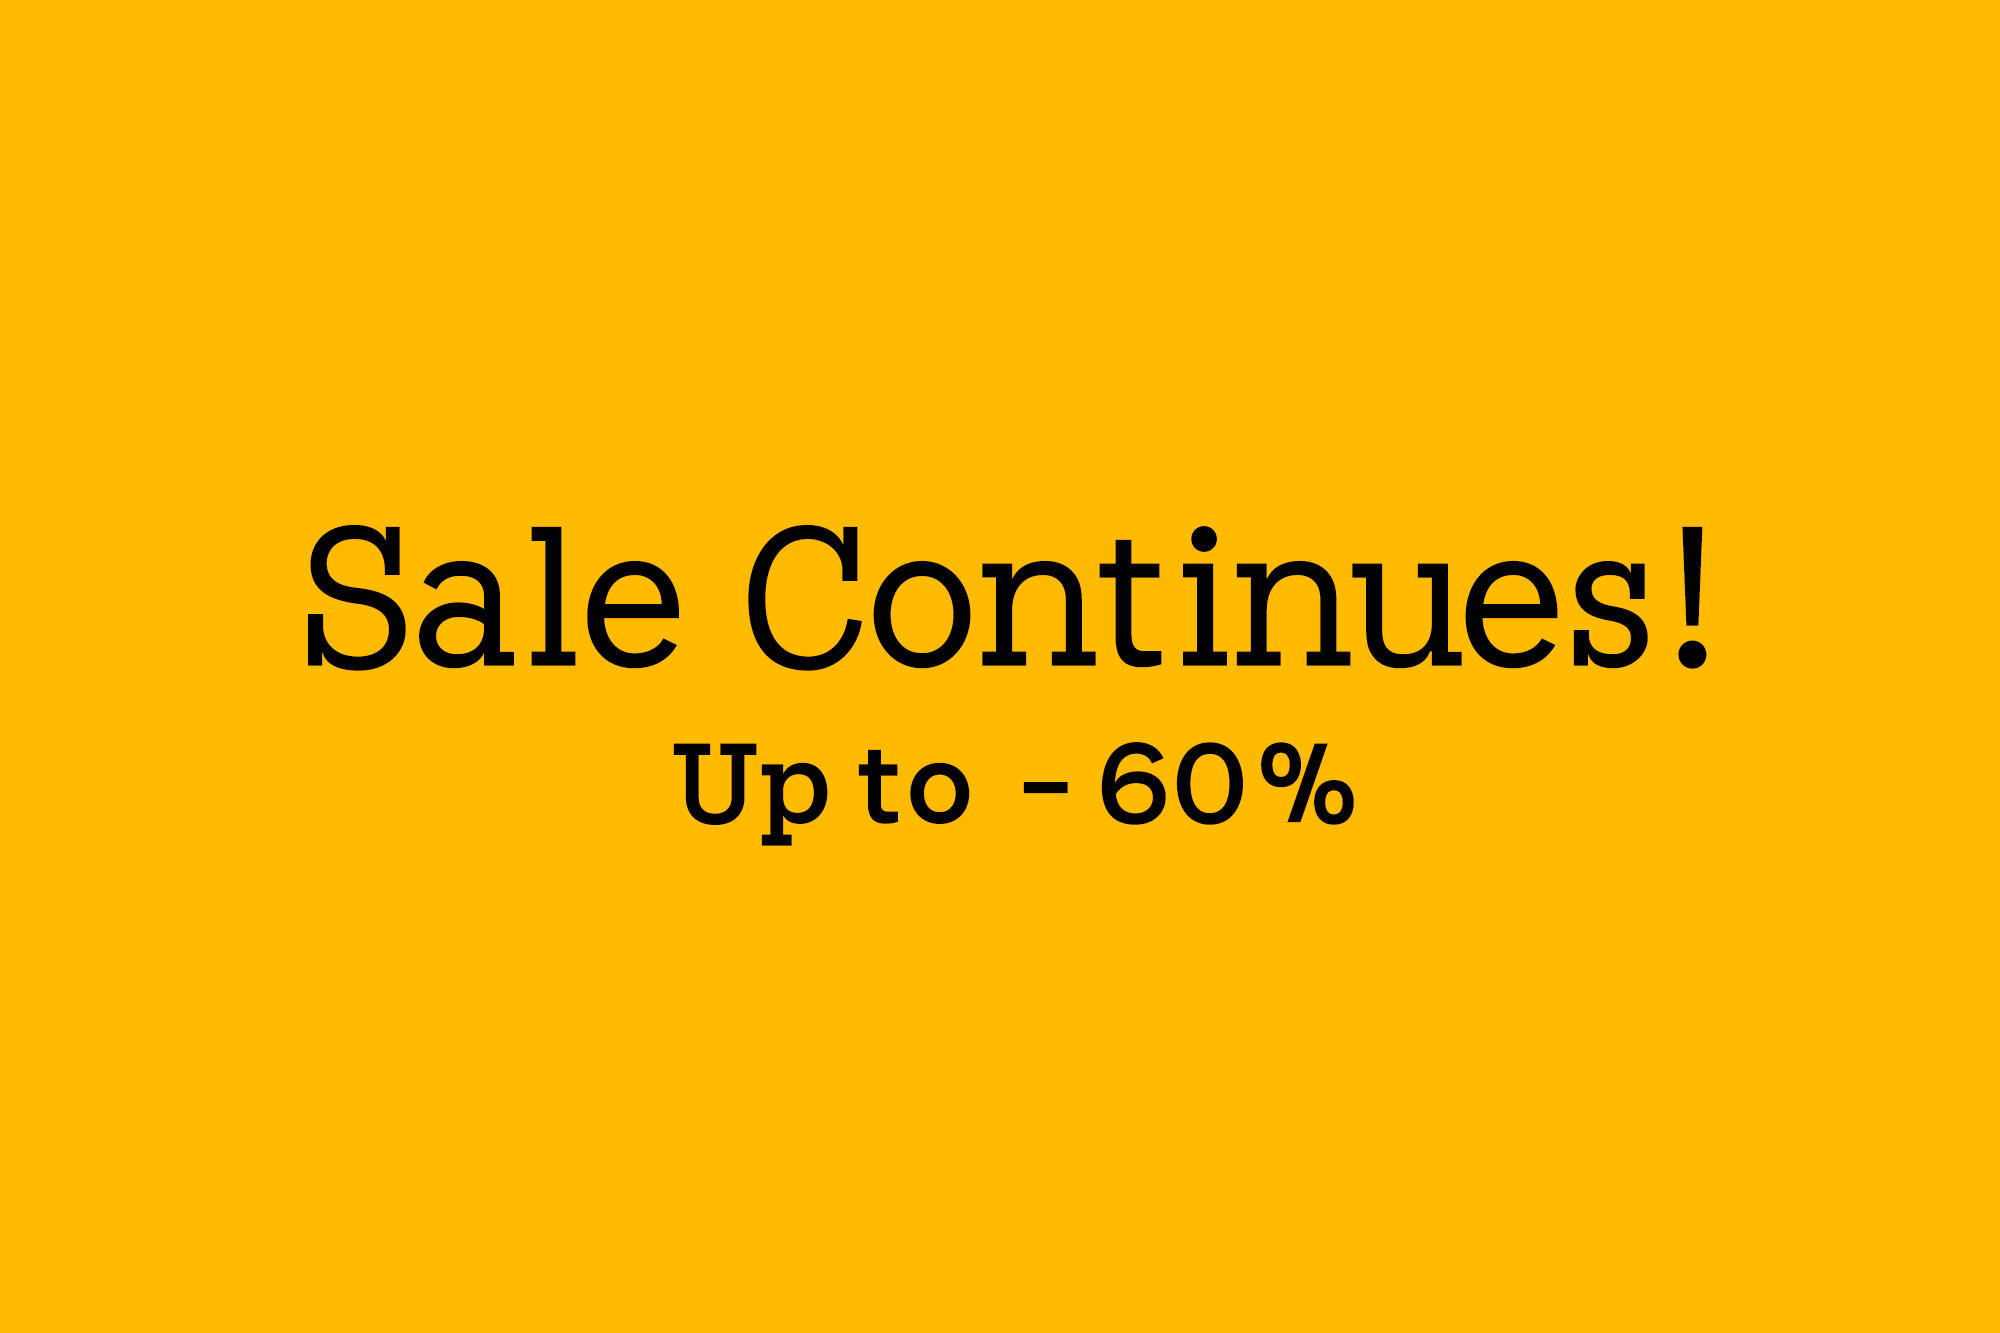 7.27- Sale Continues!